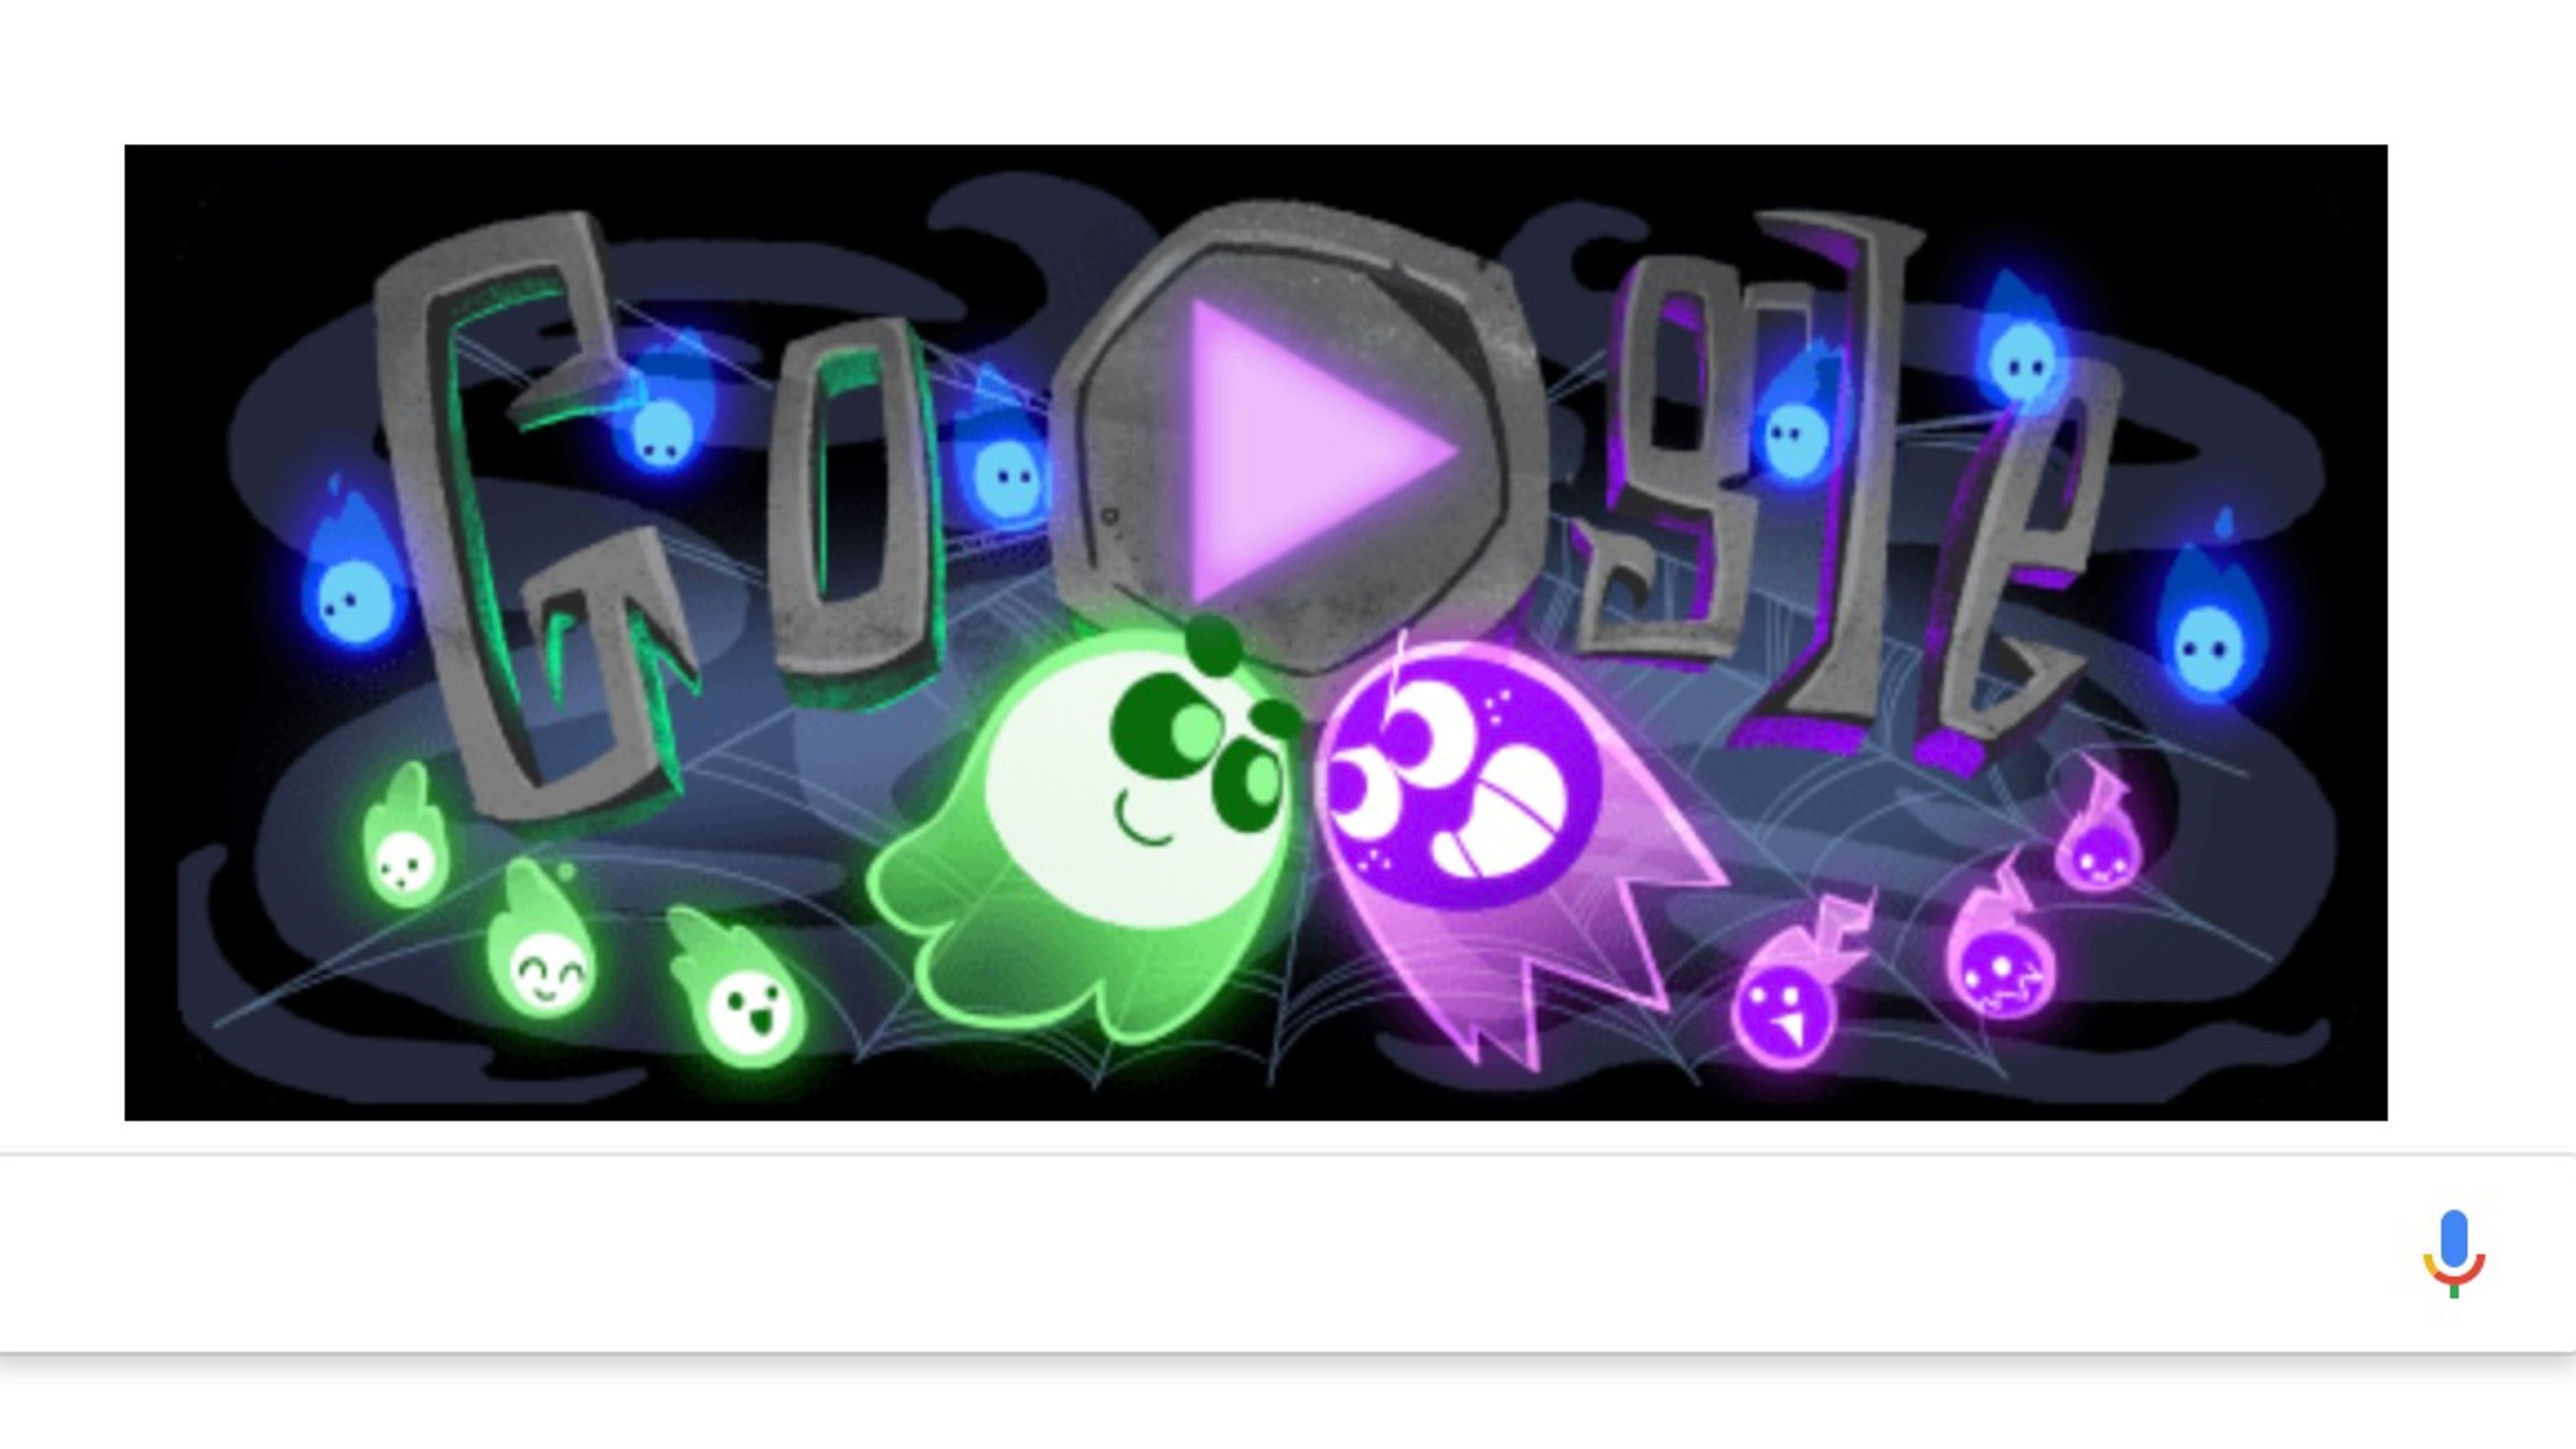 Day of the Dead 2018 Google doodles, Day of the dead